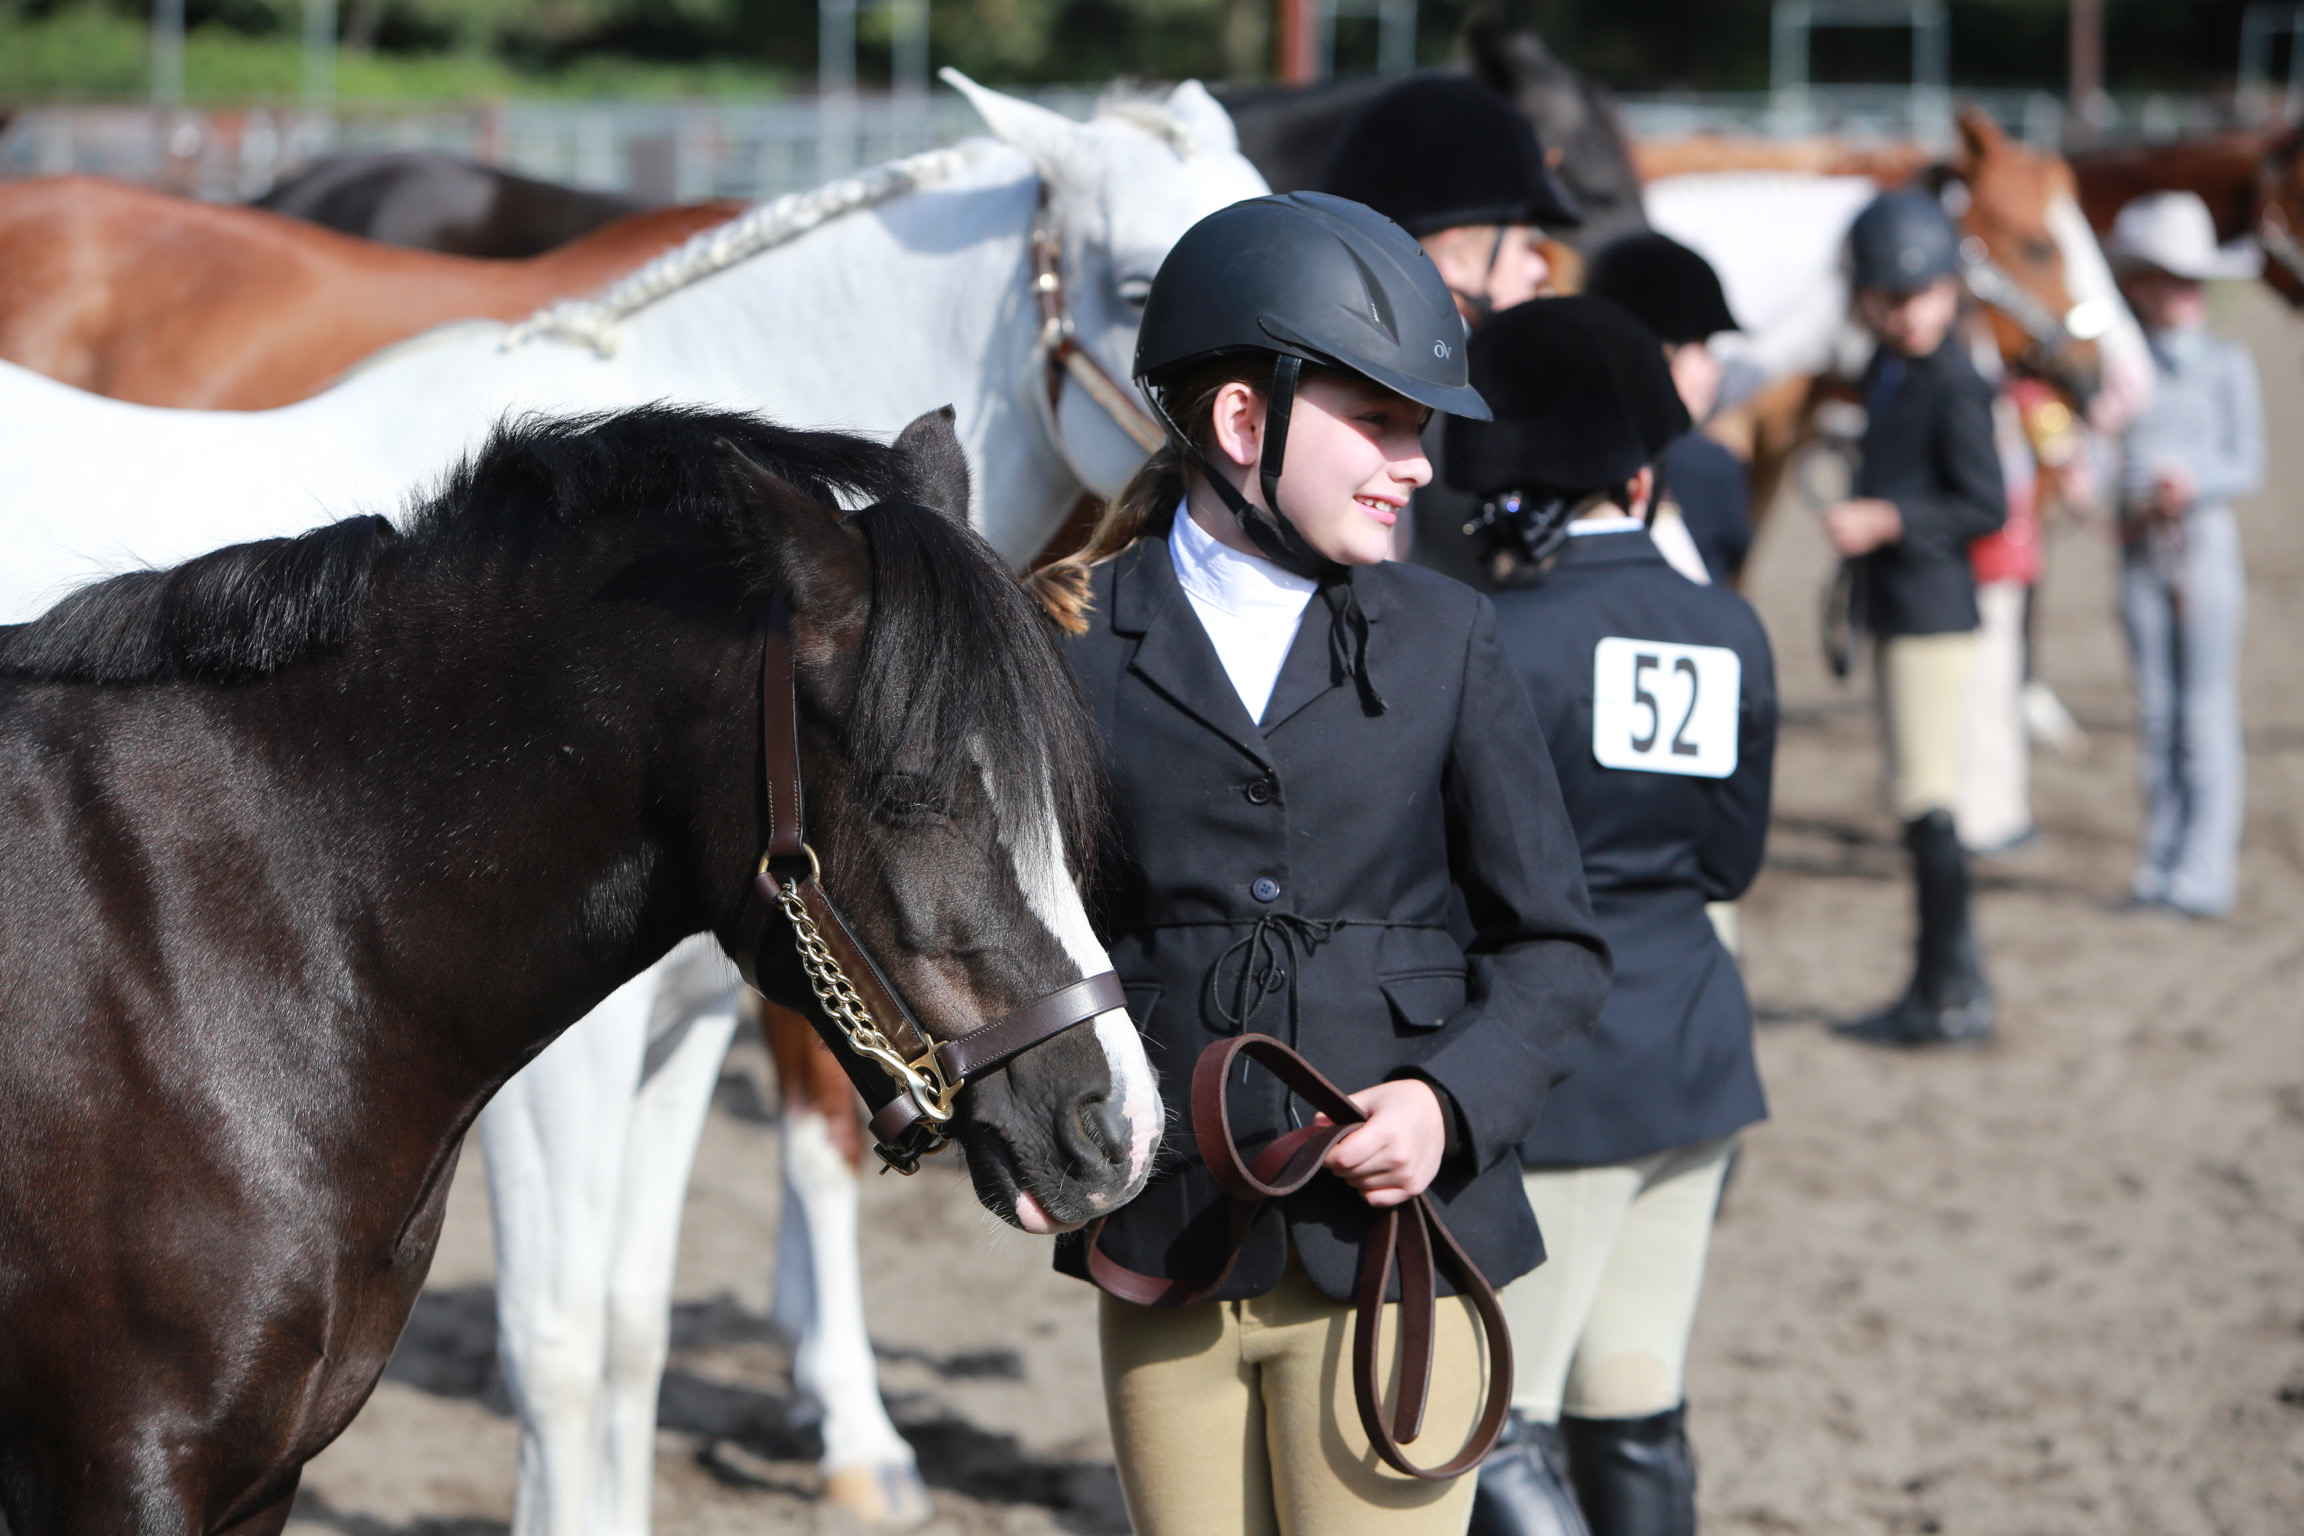 SCHOOLING SHOWS